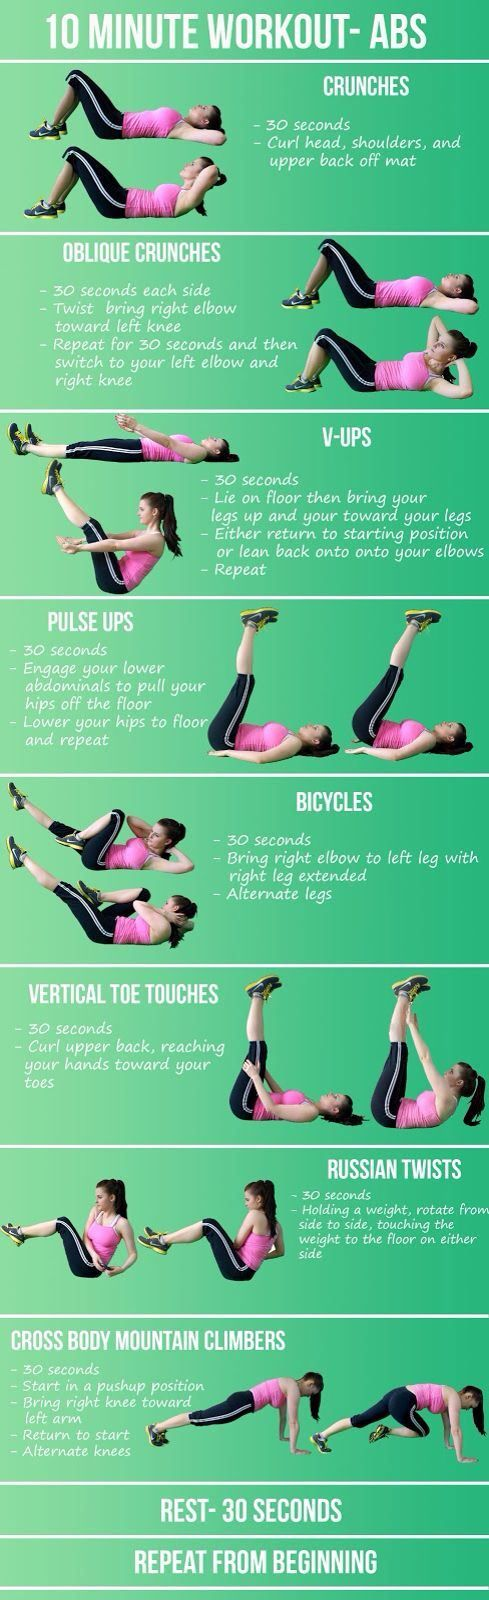 10 Minute Workout - ABS http://thepageantplanet.com/category/diet-and-exercise/